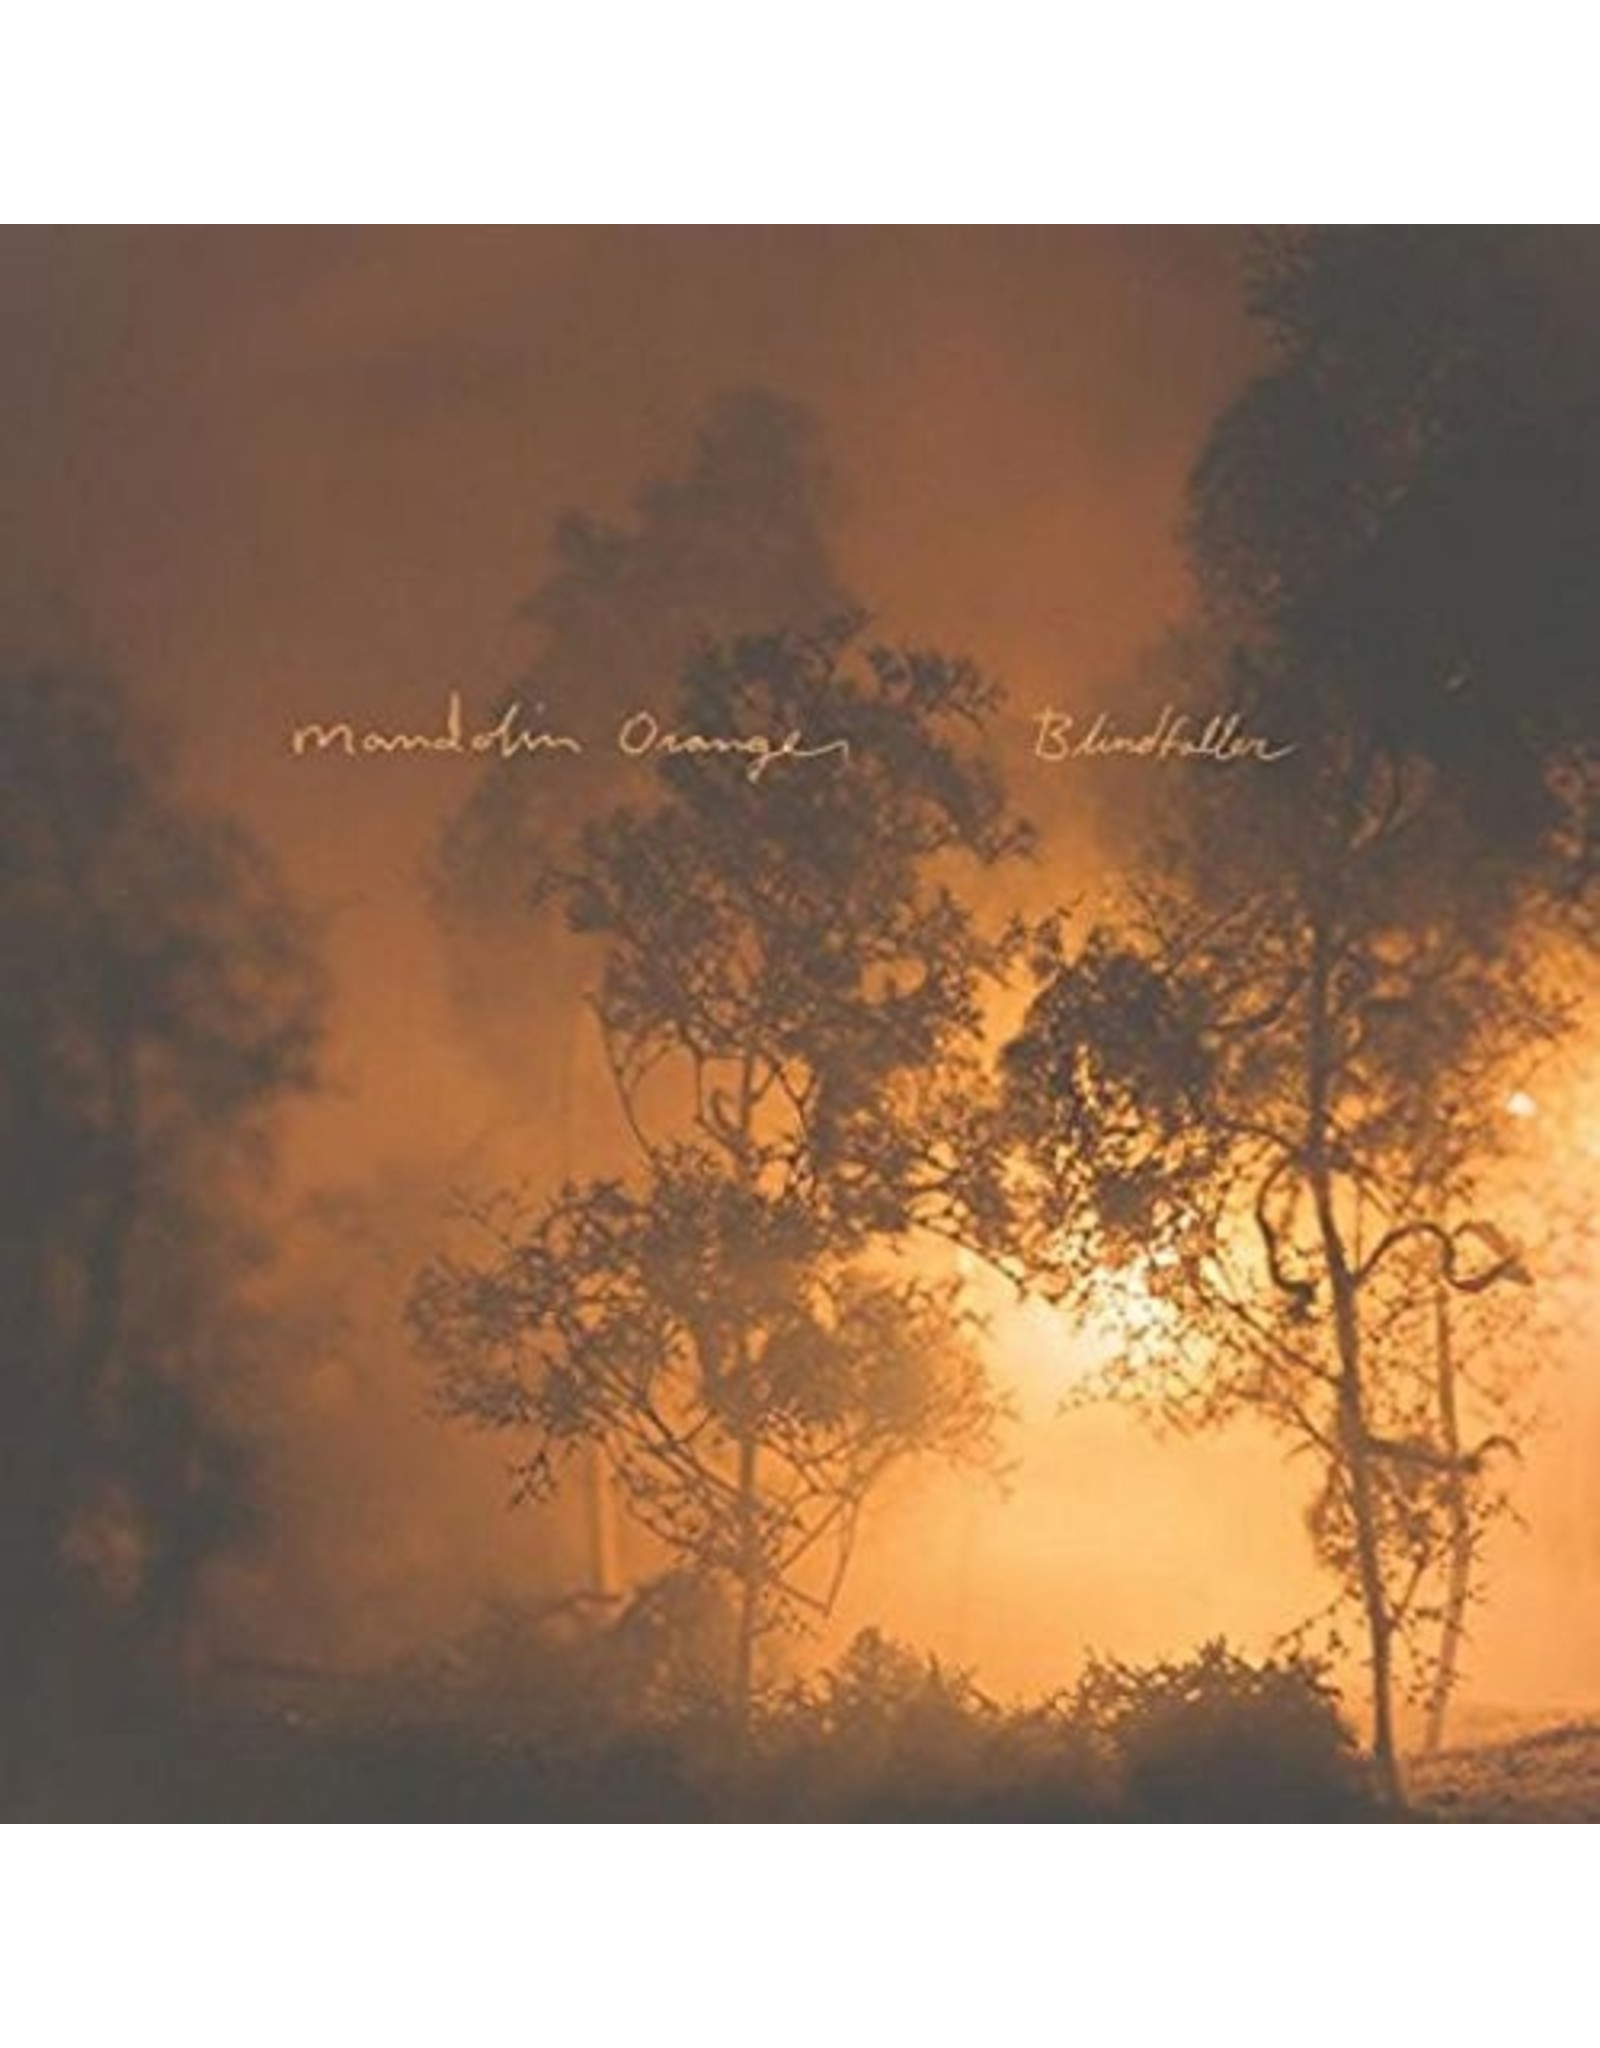 New Vinyl Mandolin Orange - Blindfaller LP